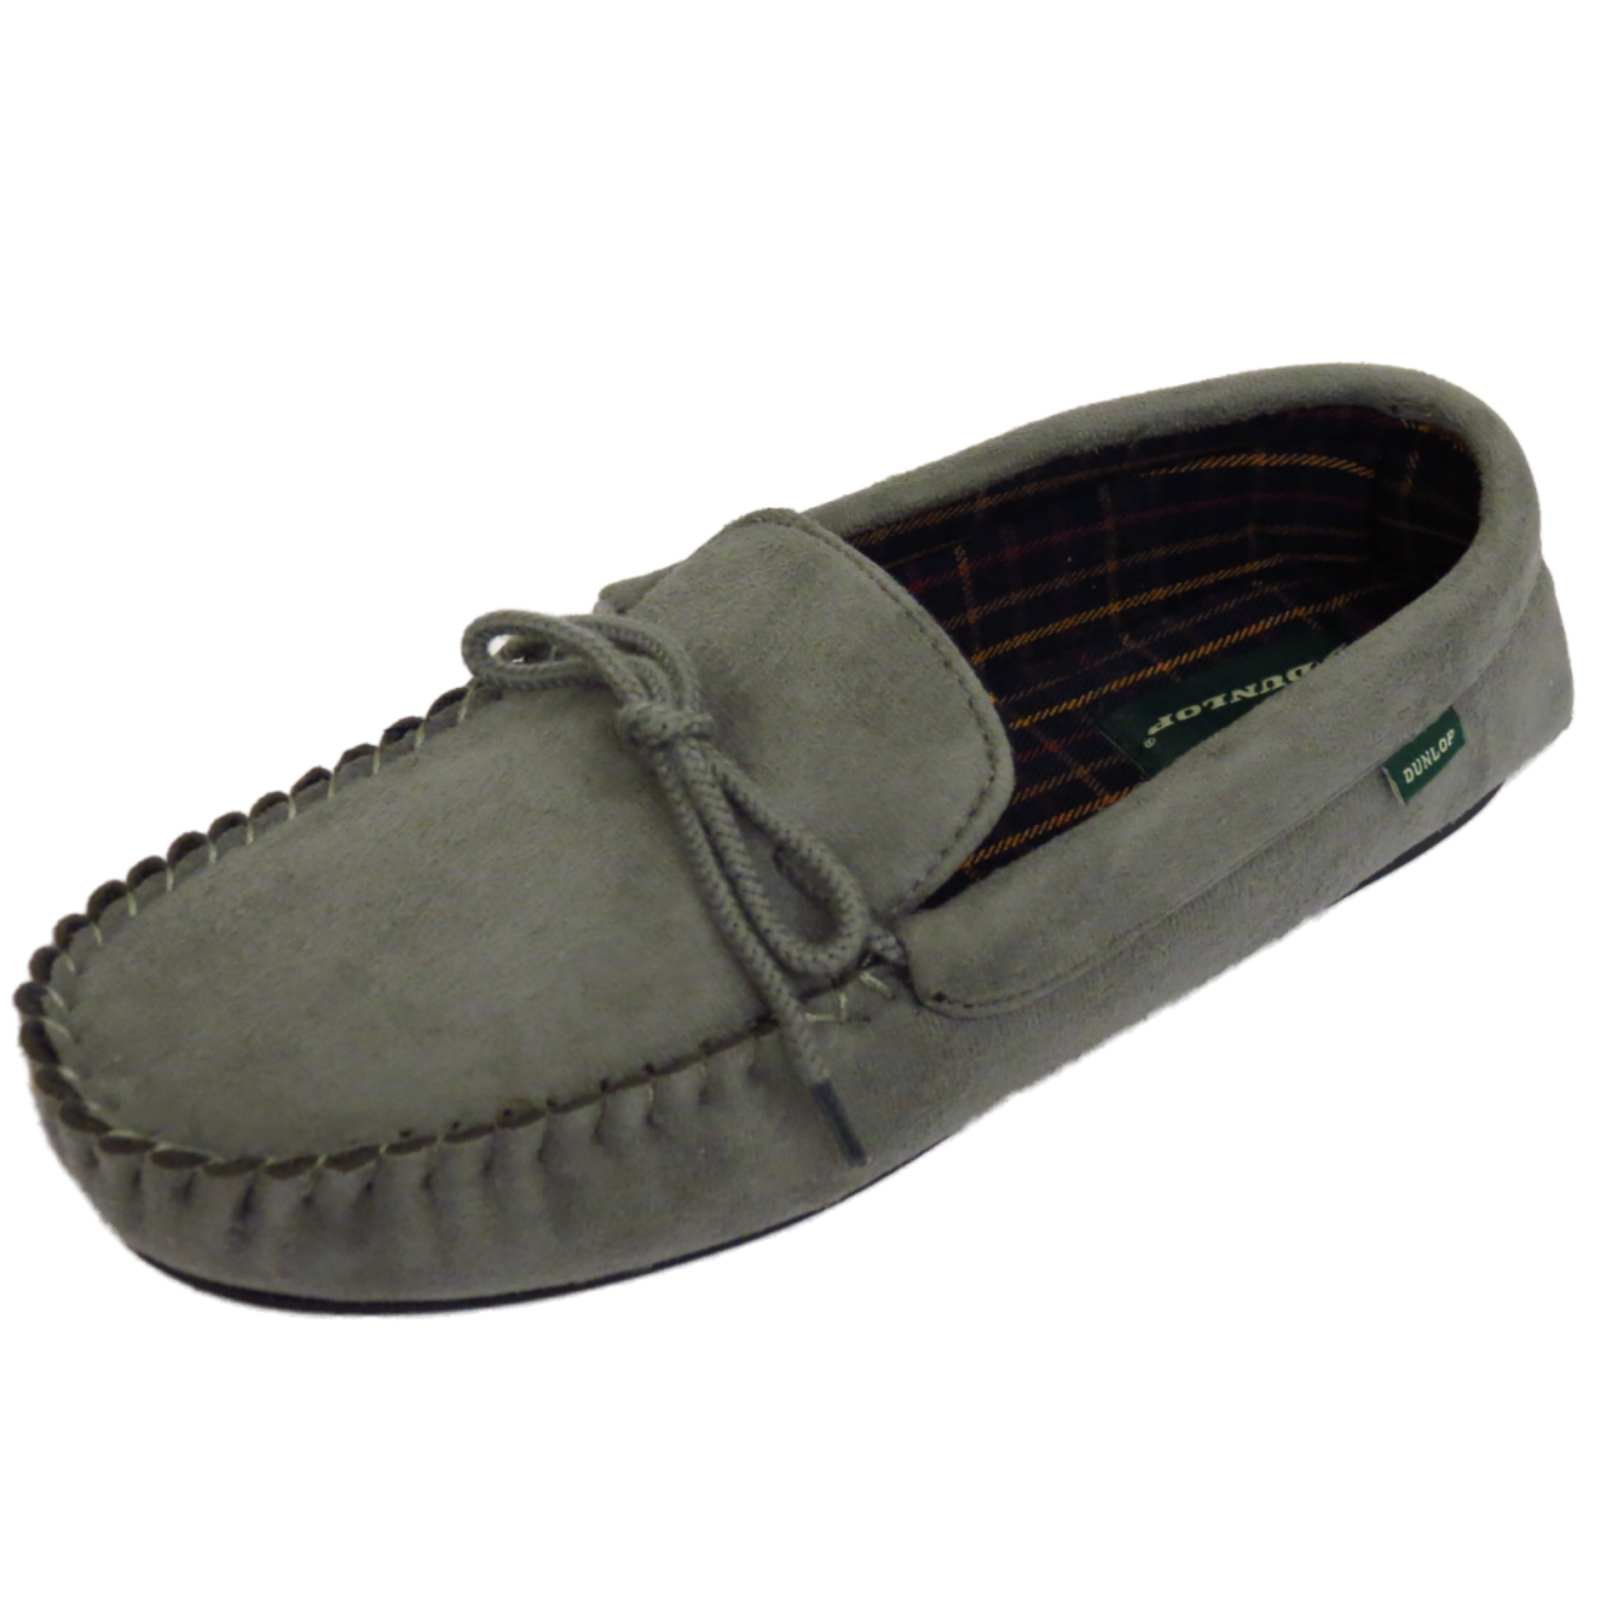 mens brown bedroom suede co s slippers spin wid tan paxton p men roebuck trapper hei qlt prod moccasin shoes